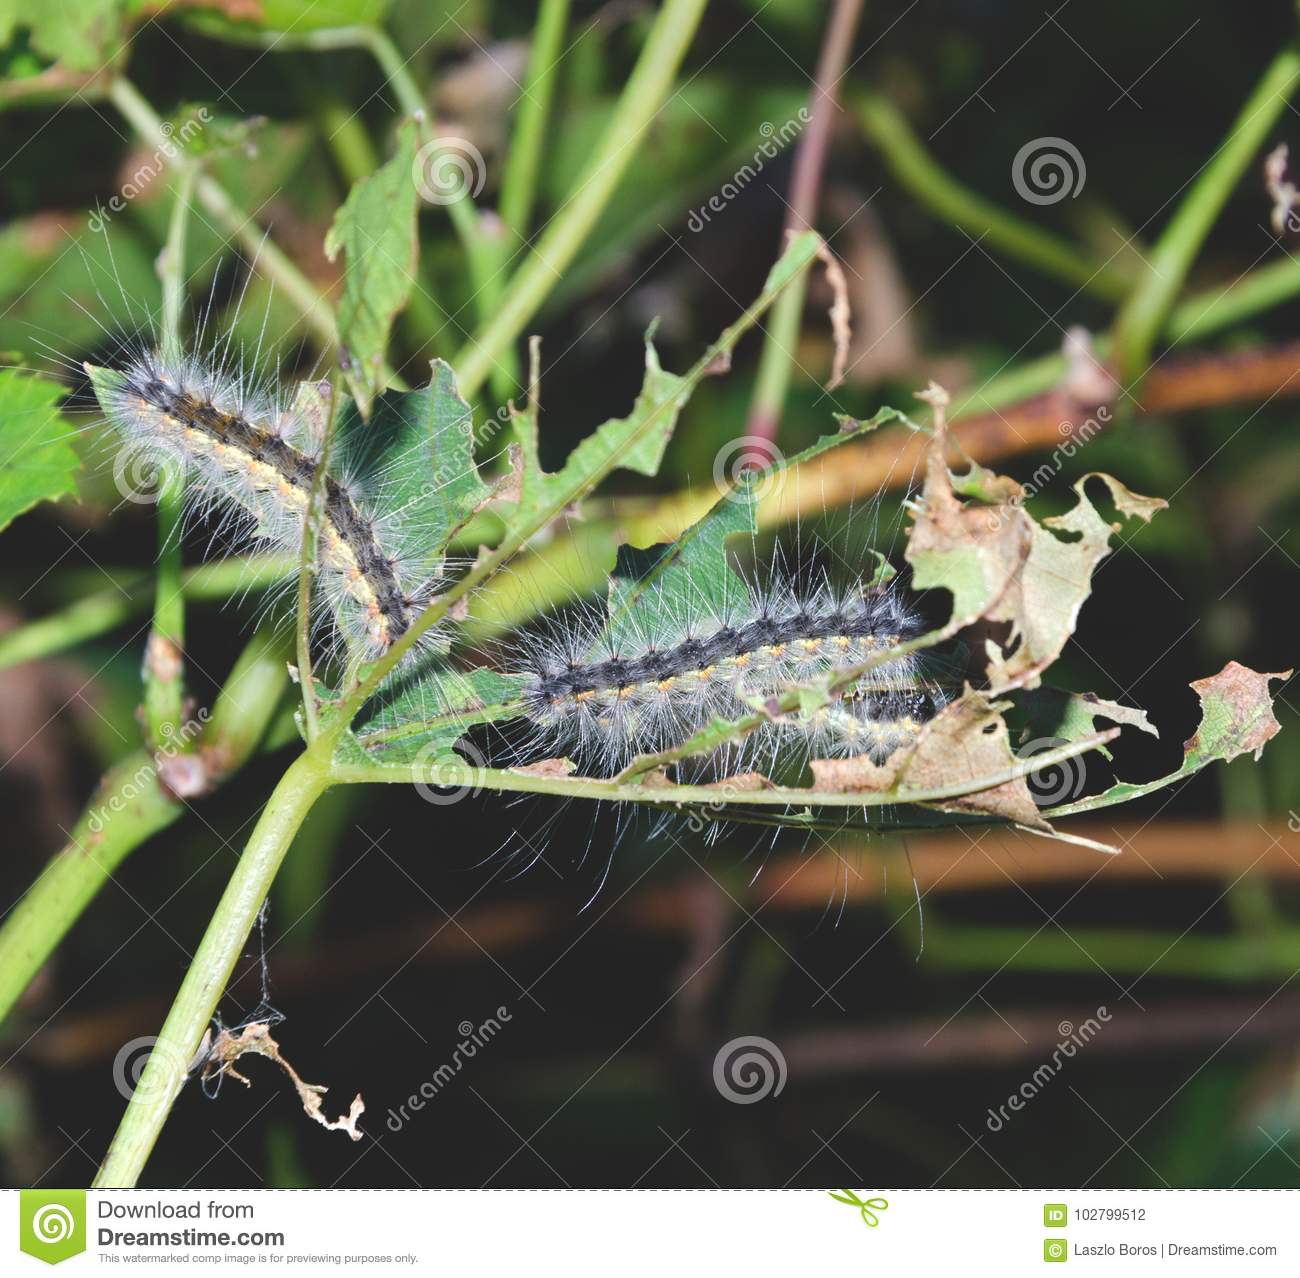 Lymantria dispar caterpillars. European gypsy moth on a grape leaf.